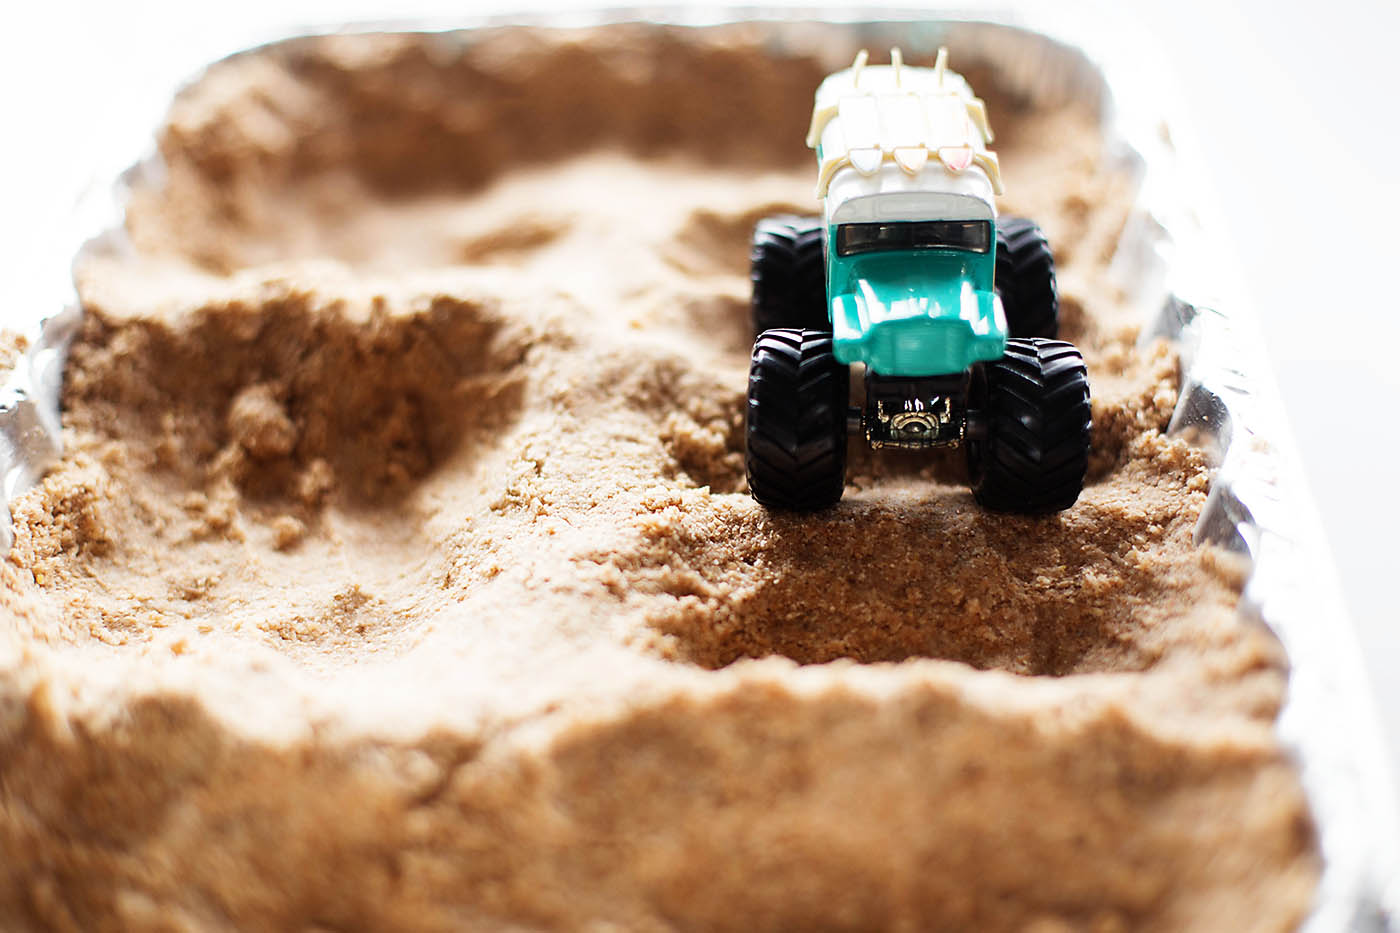 DIY sand for a toy motocross track - fun indoor play idea!